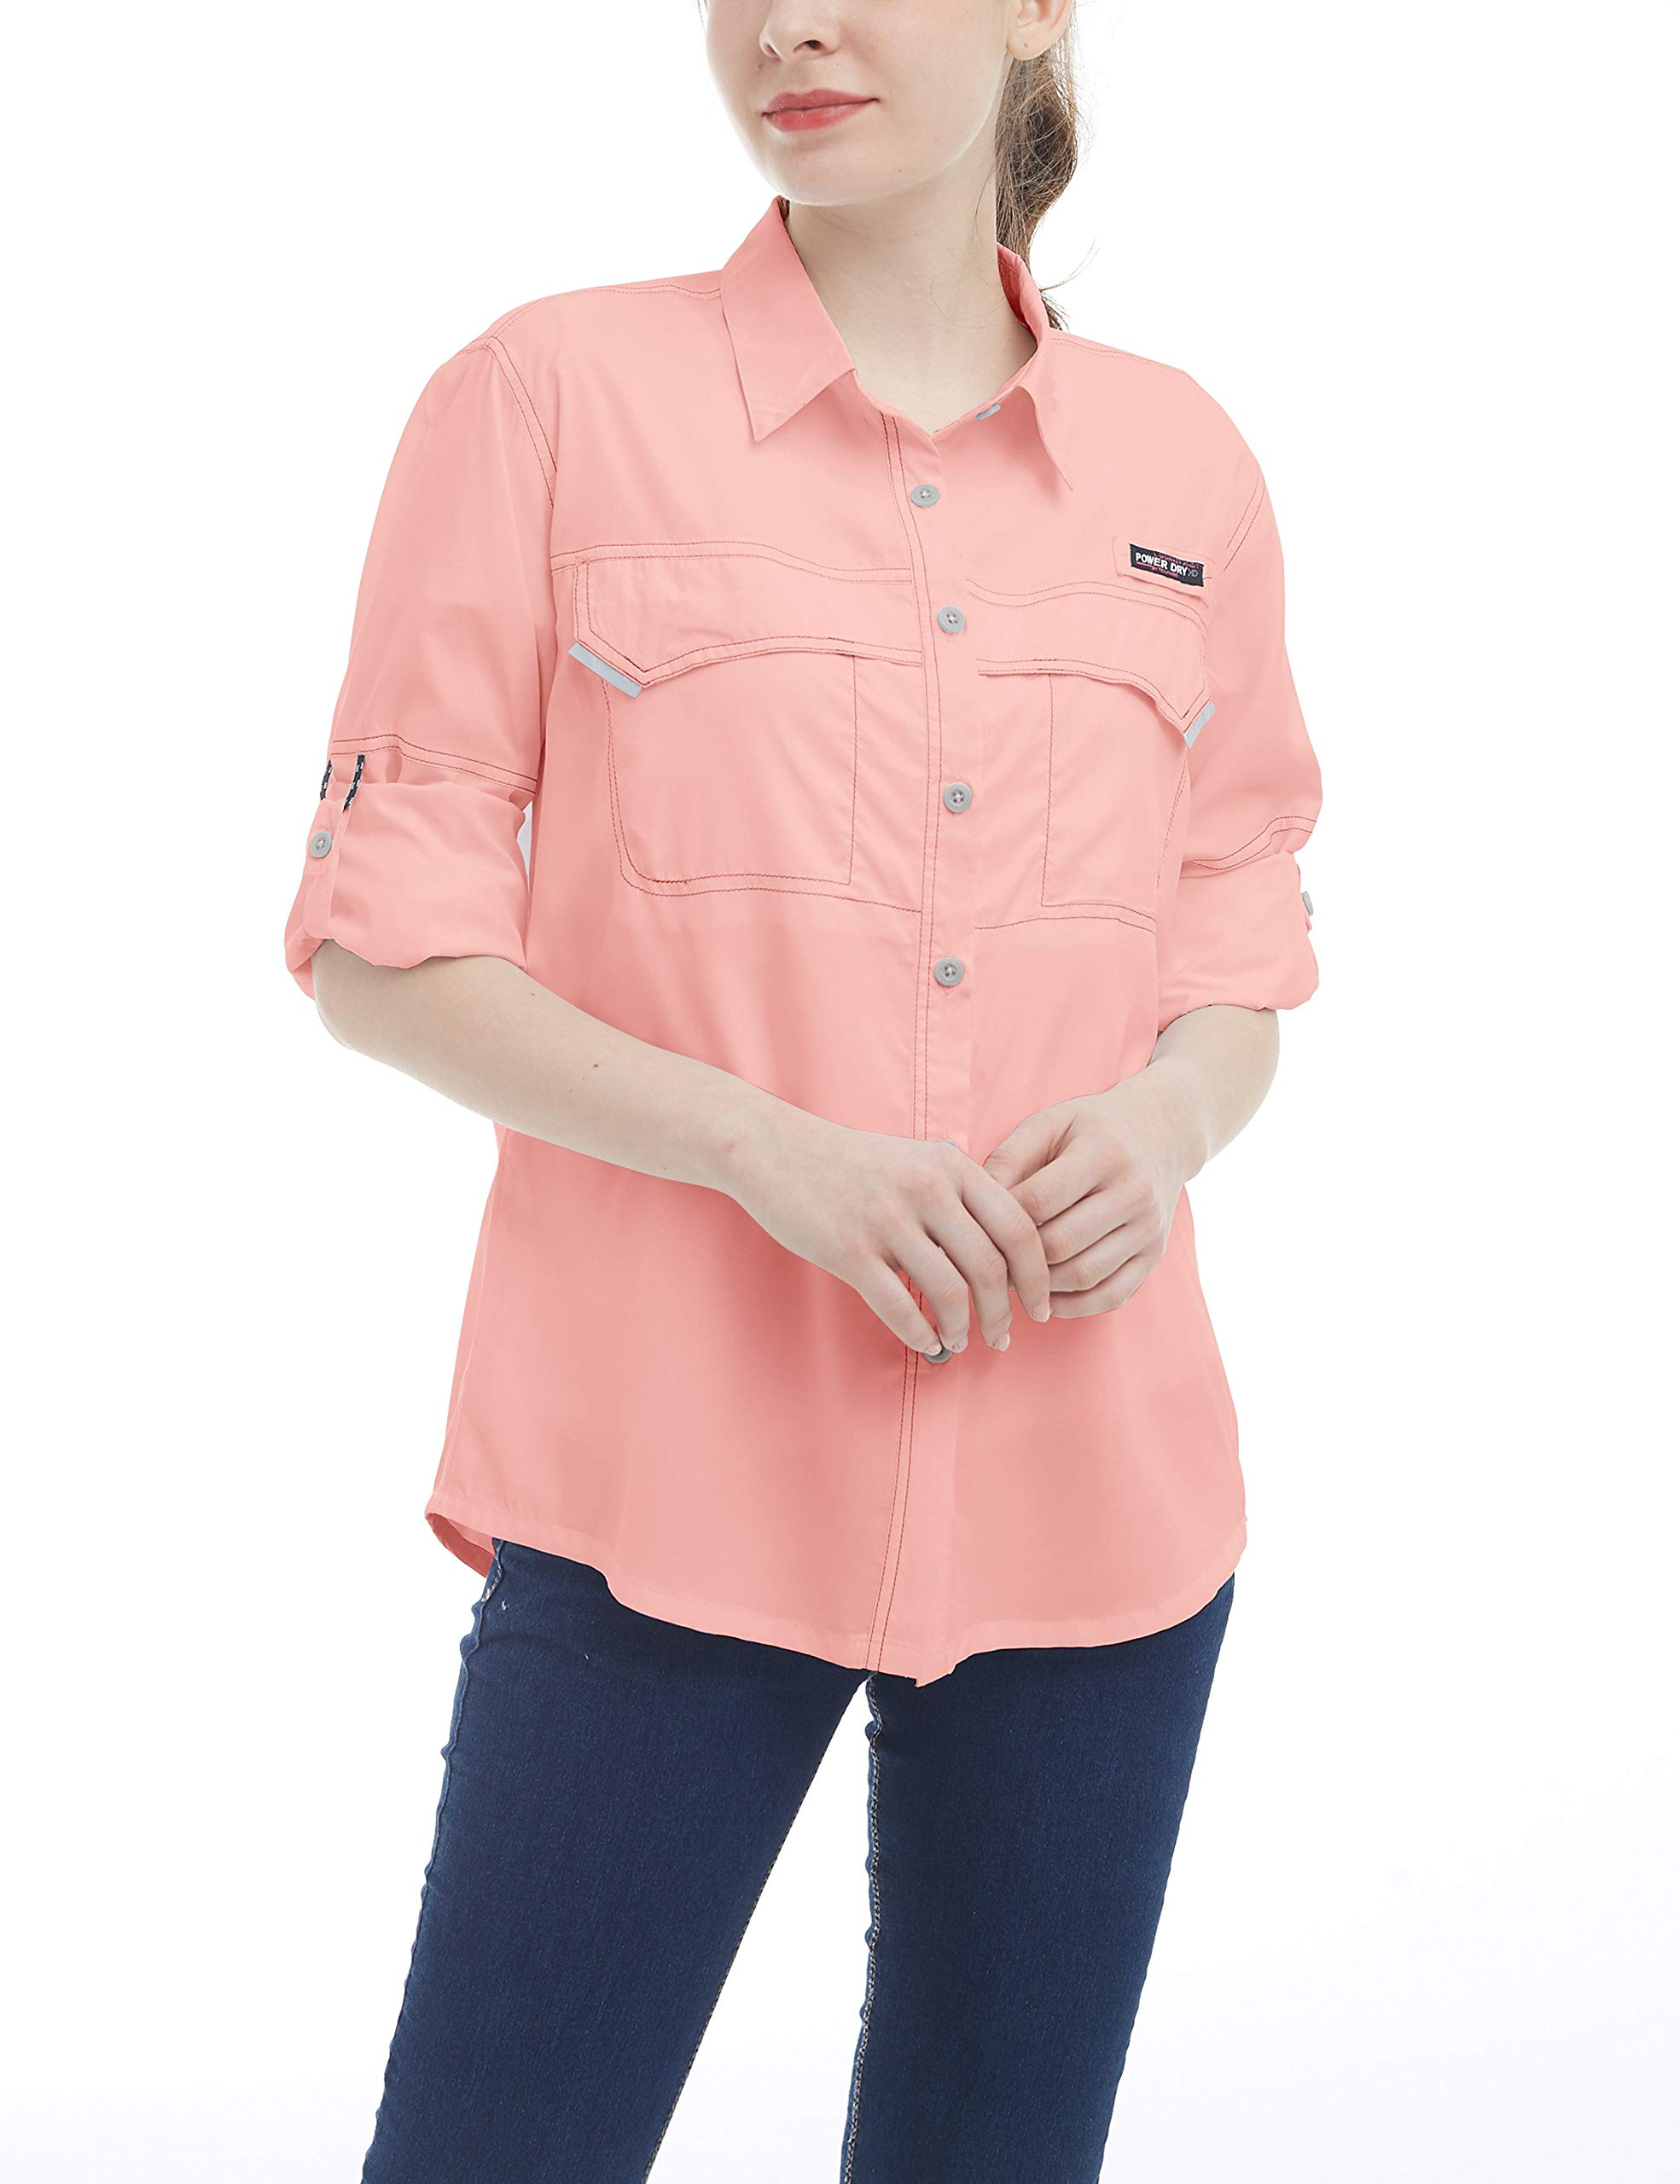 Little Donkey Andy Women's UPF 50+ UV Protection Shirt, Long Sleeve Fishing Shirt, Breathable and Fast Dry Coral L by Little Donkey Andy